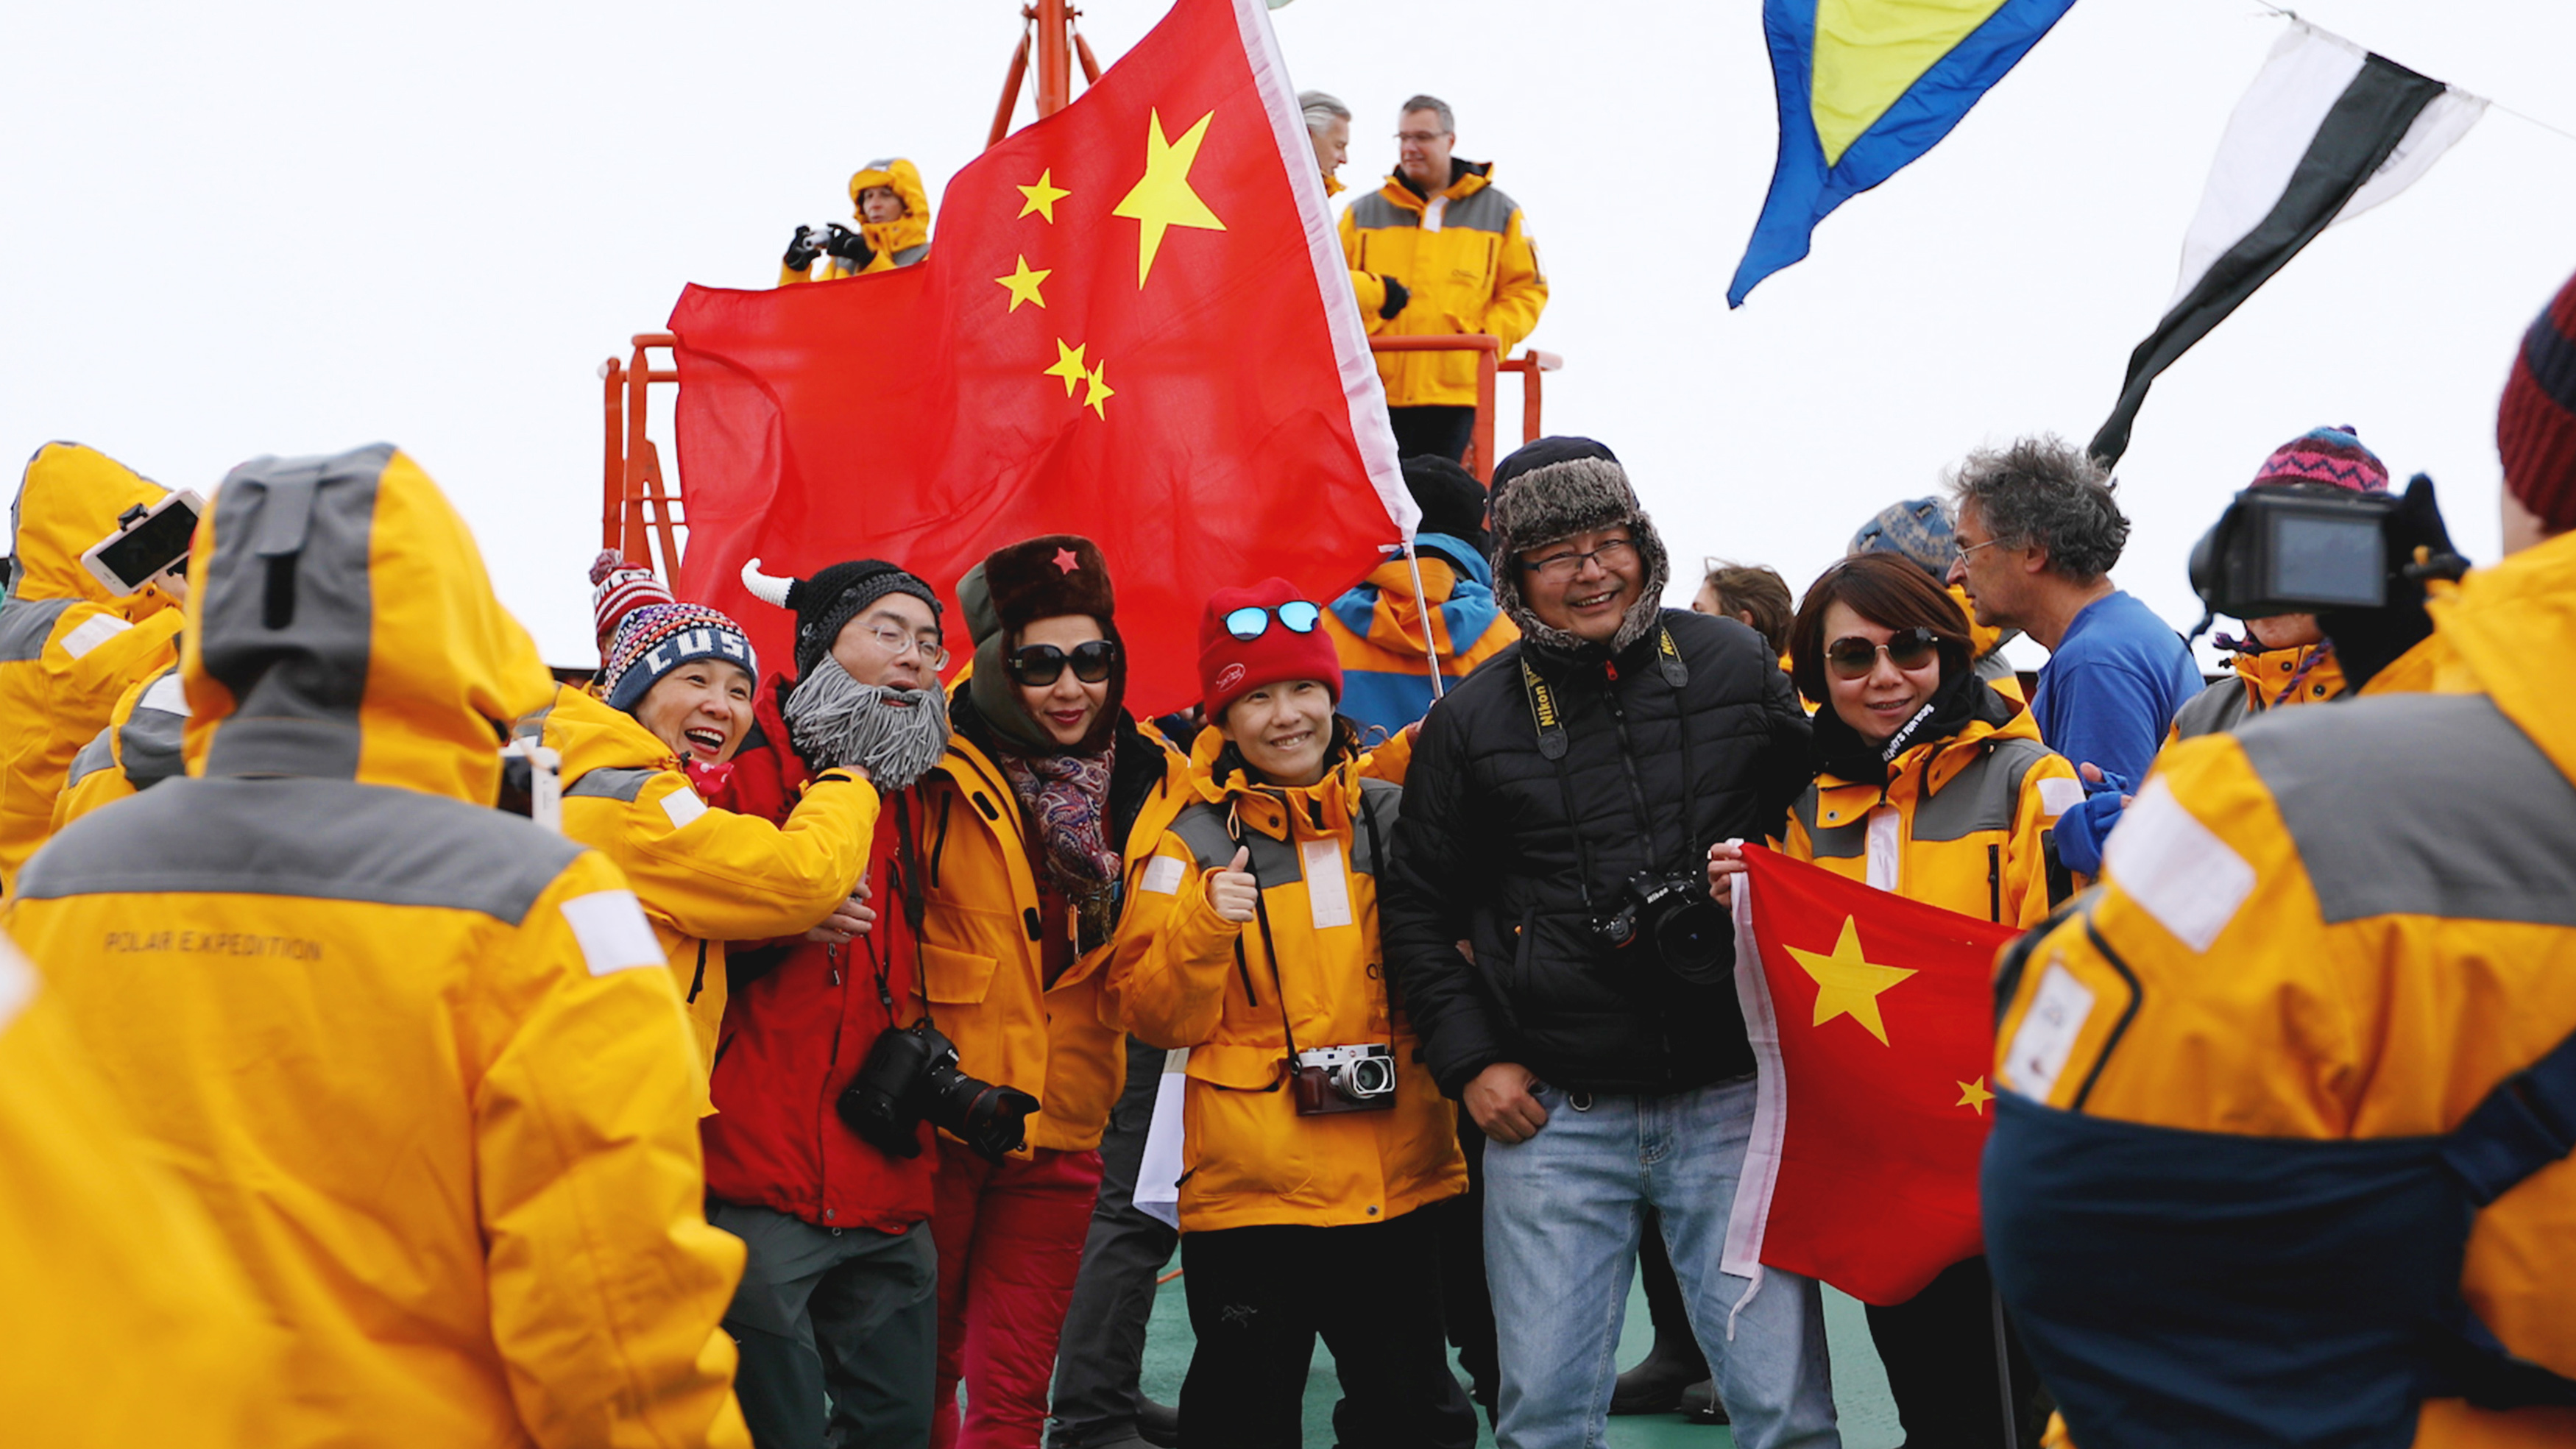 A group of Chinese passengers celebrate reaching the North Pole. Photo: Dani Plumb